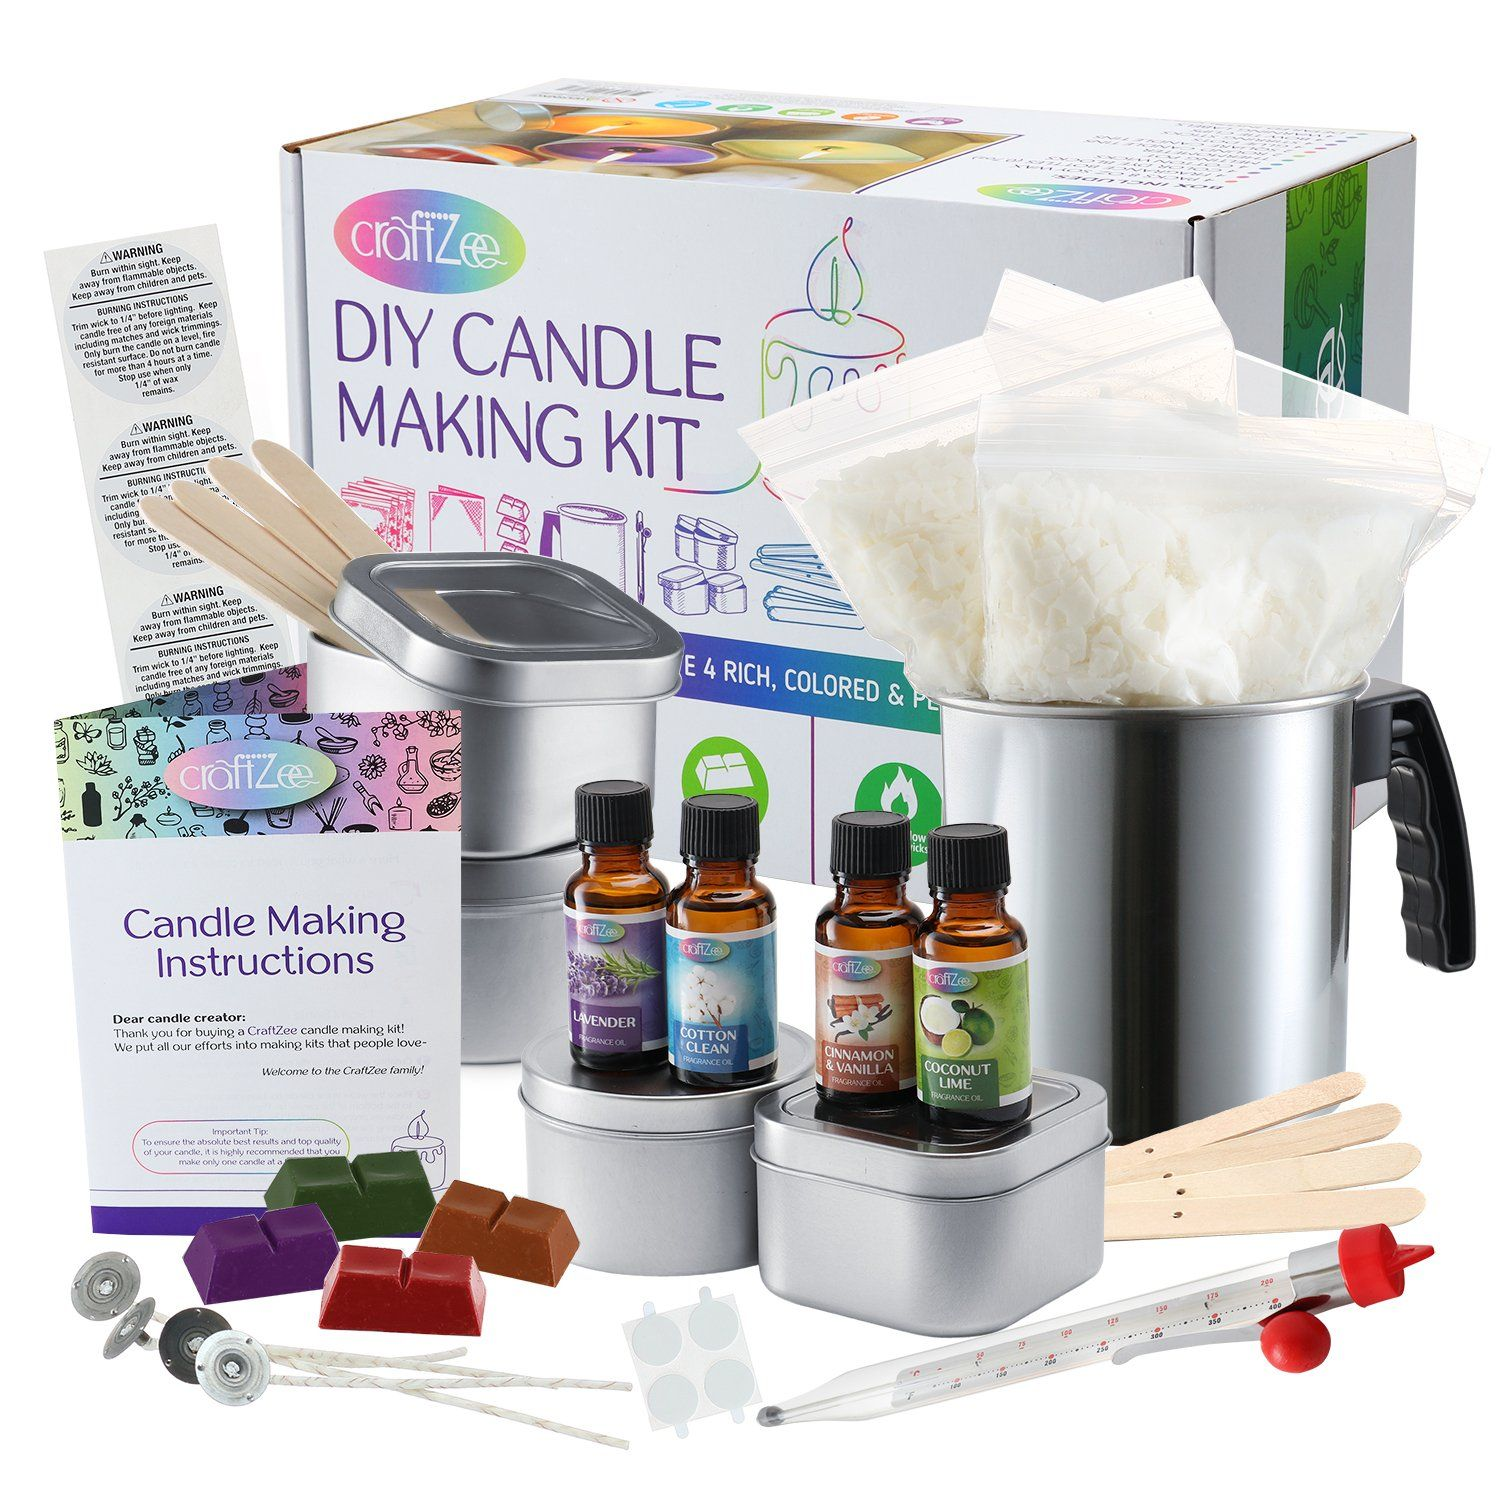 DIY Candle & Soap Making Craft KITS in 2020 Candle